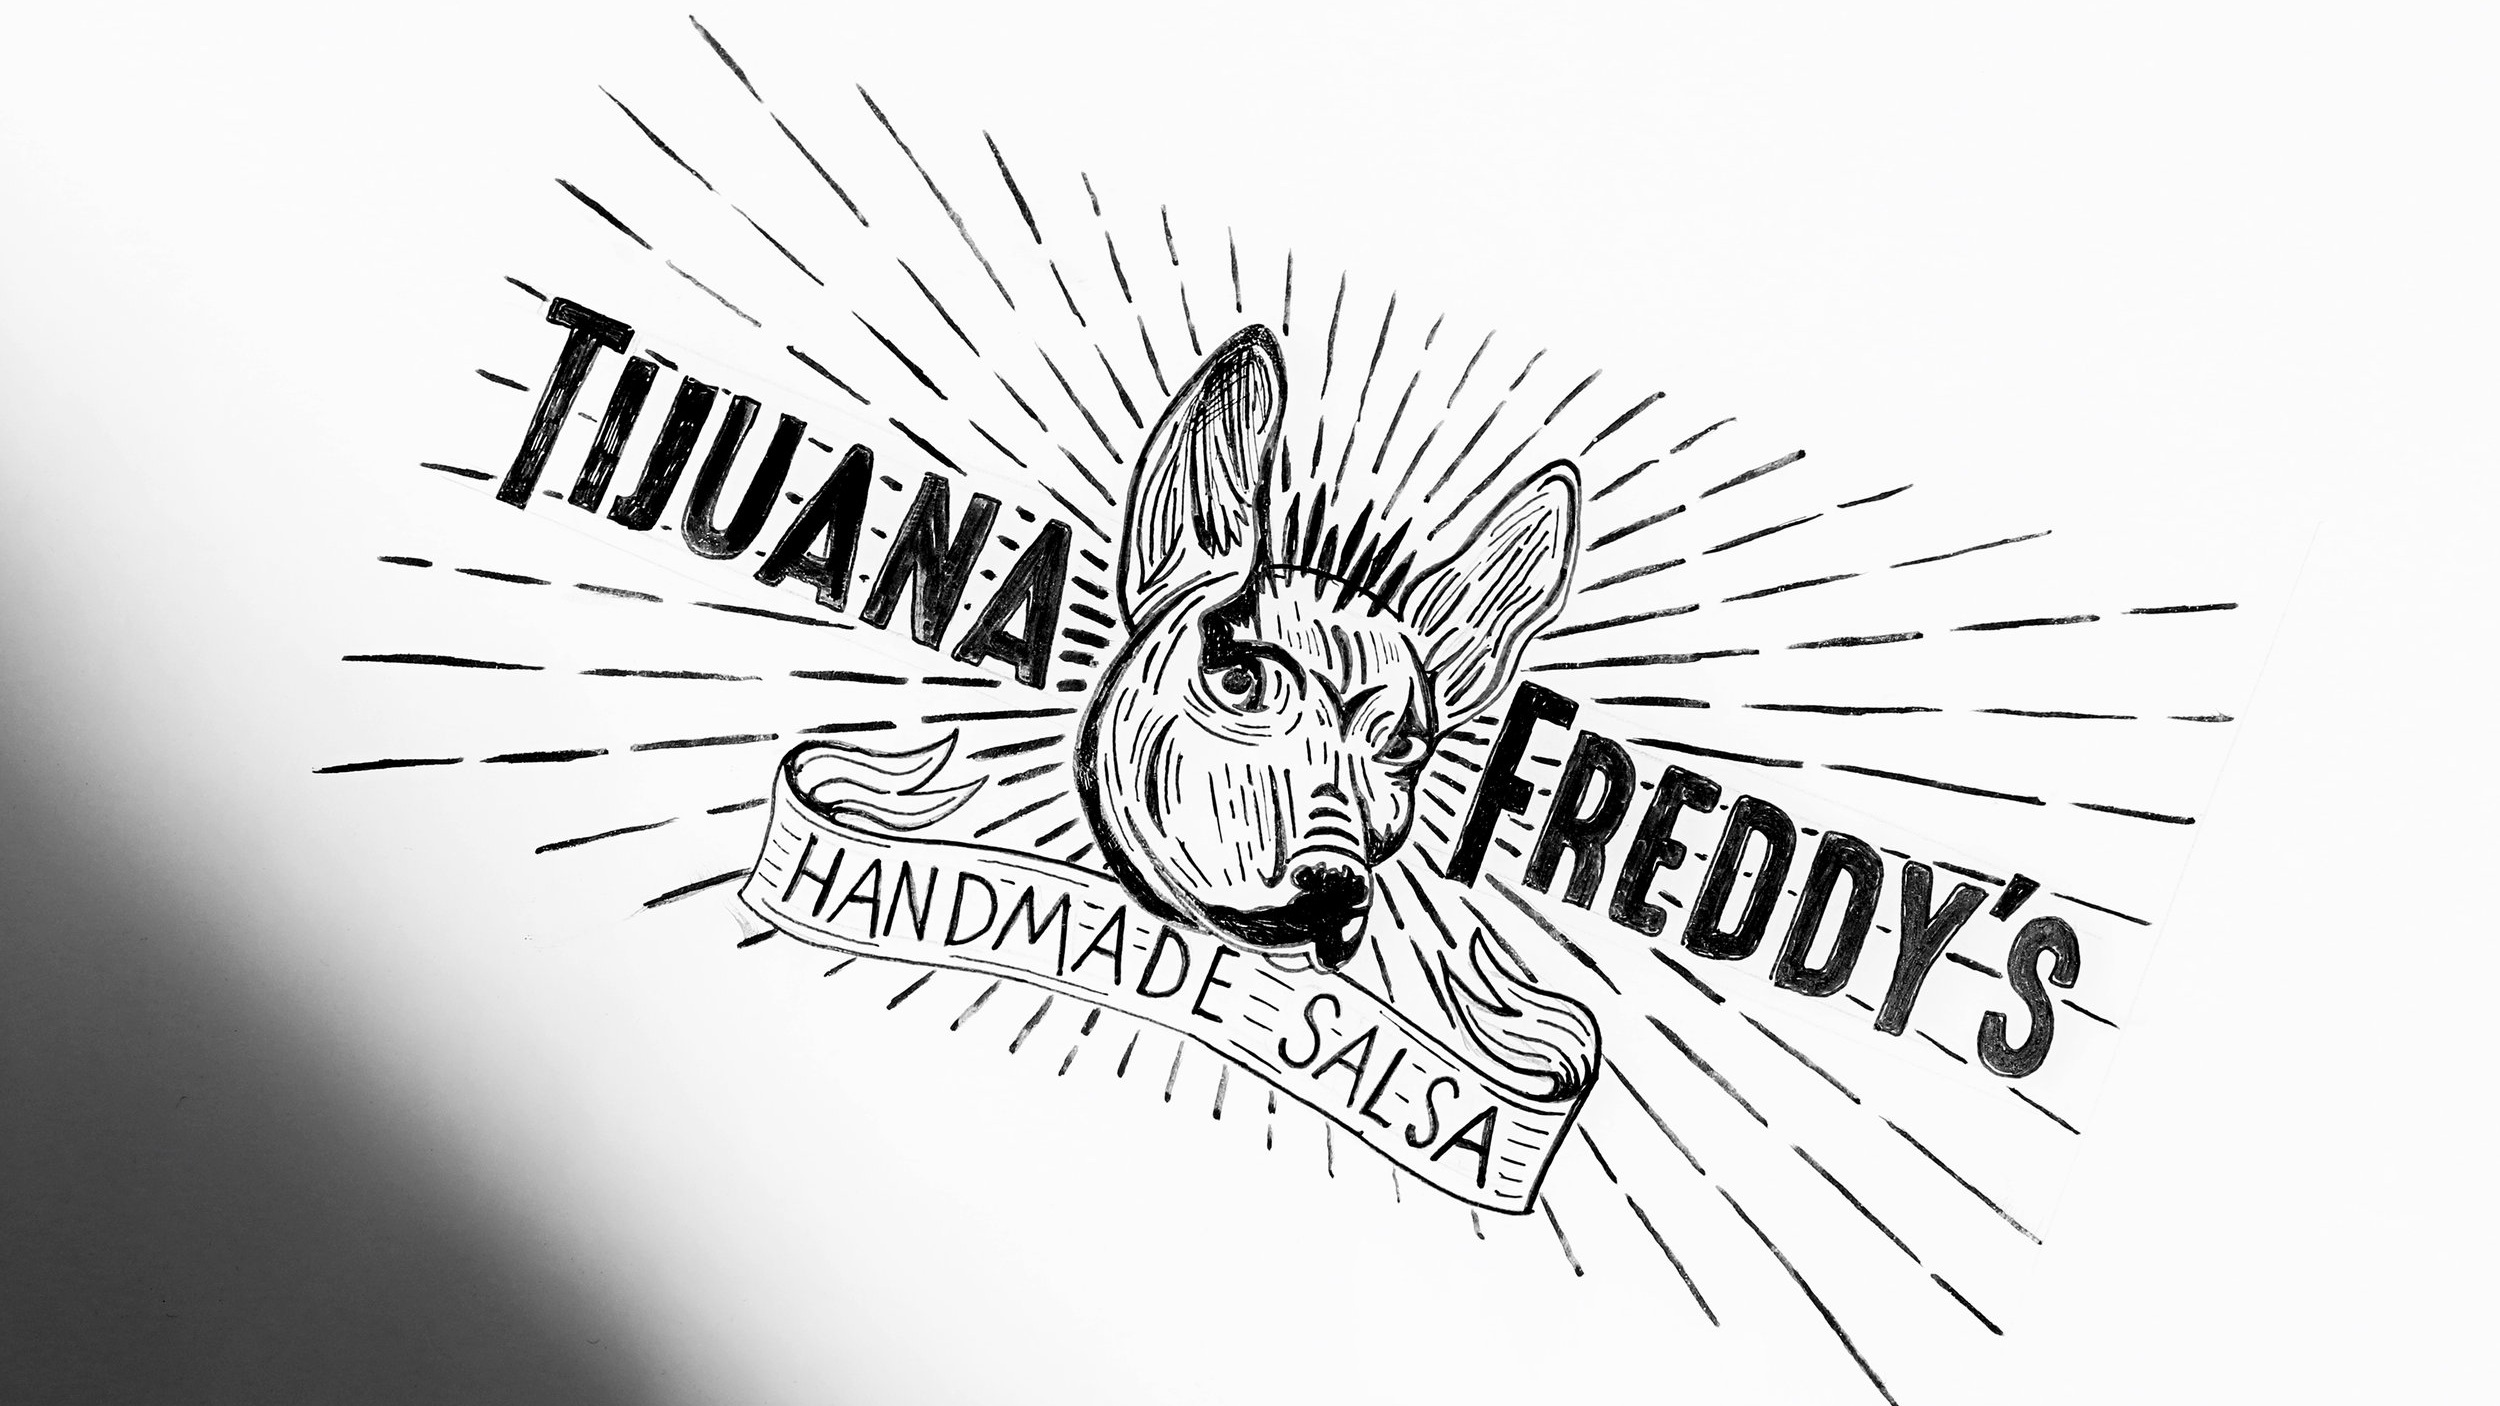 TIJUANA FREDDY'S - Branding | Illustration